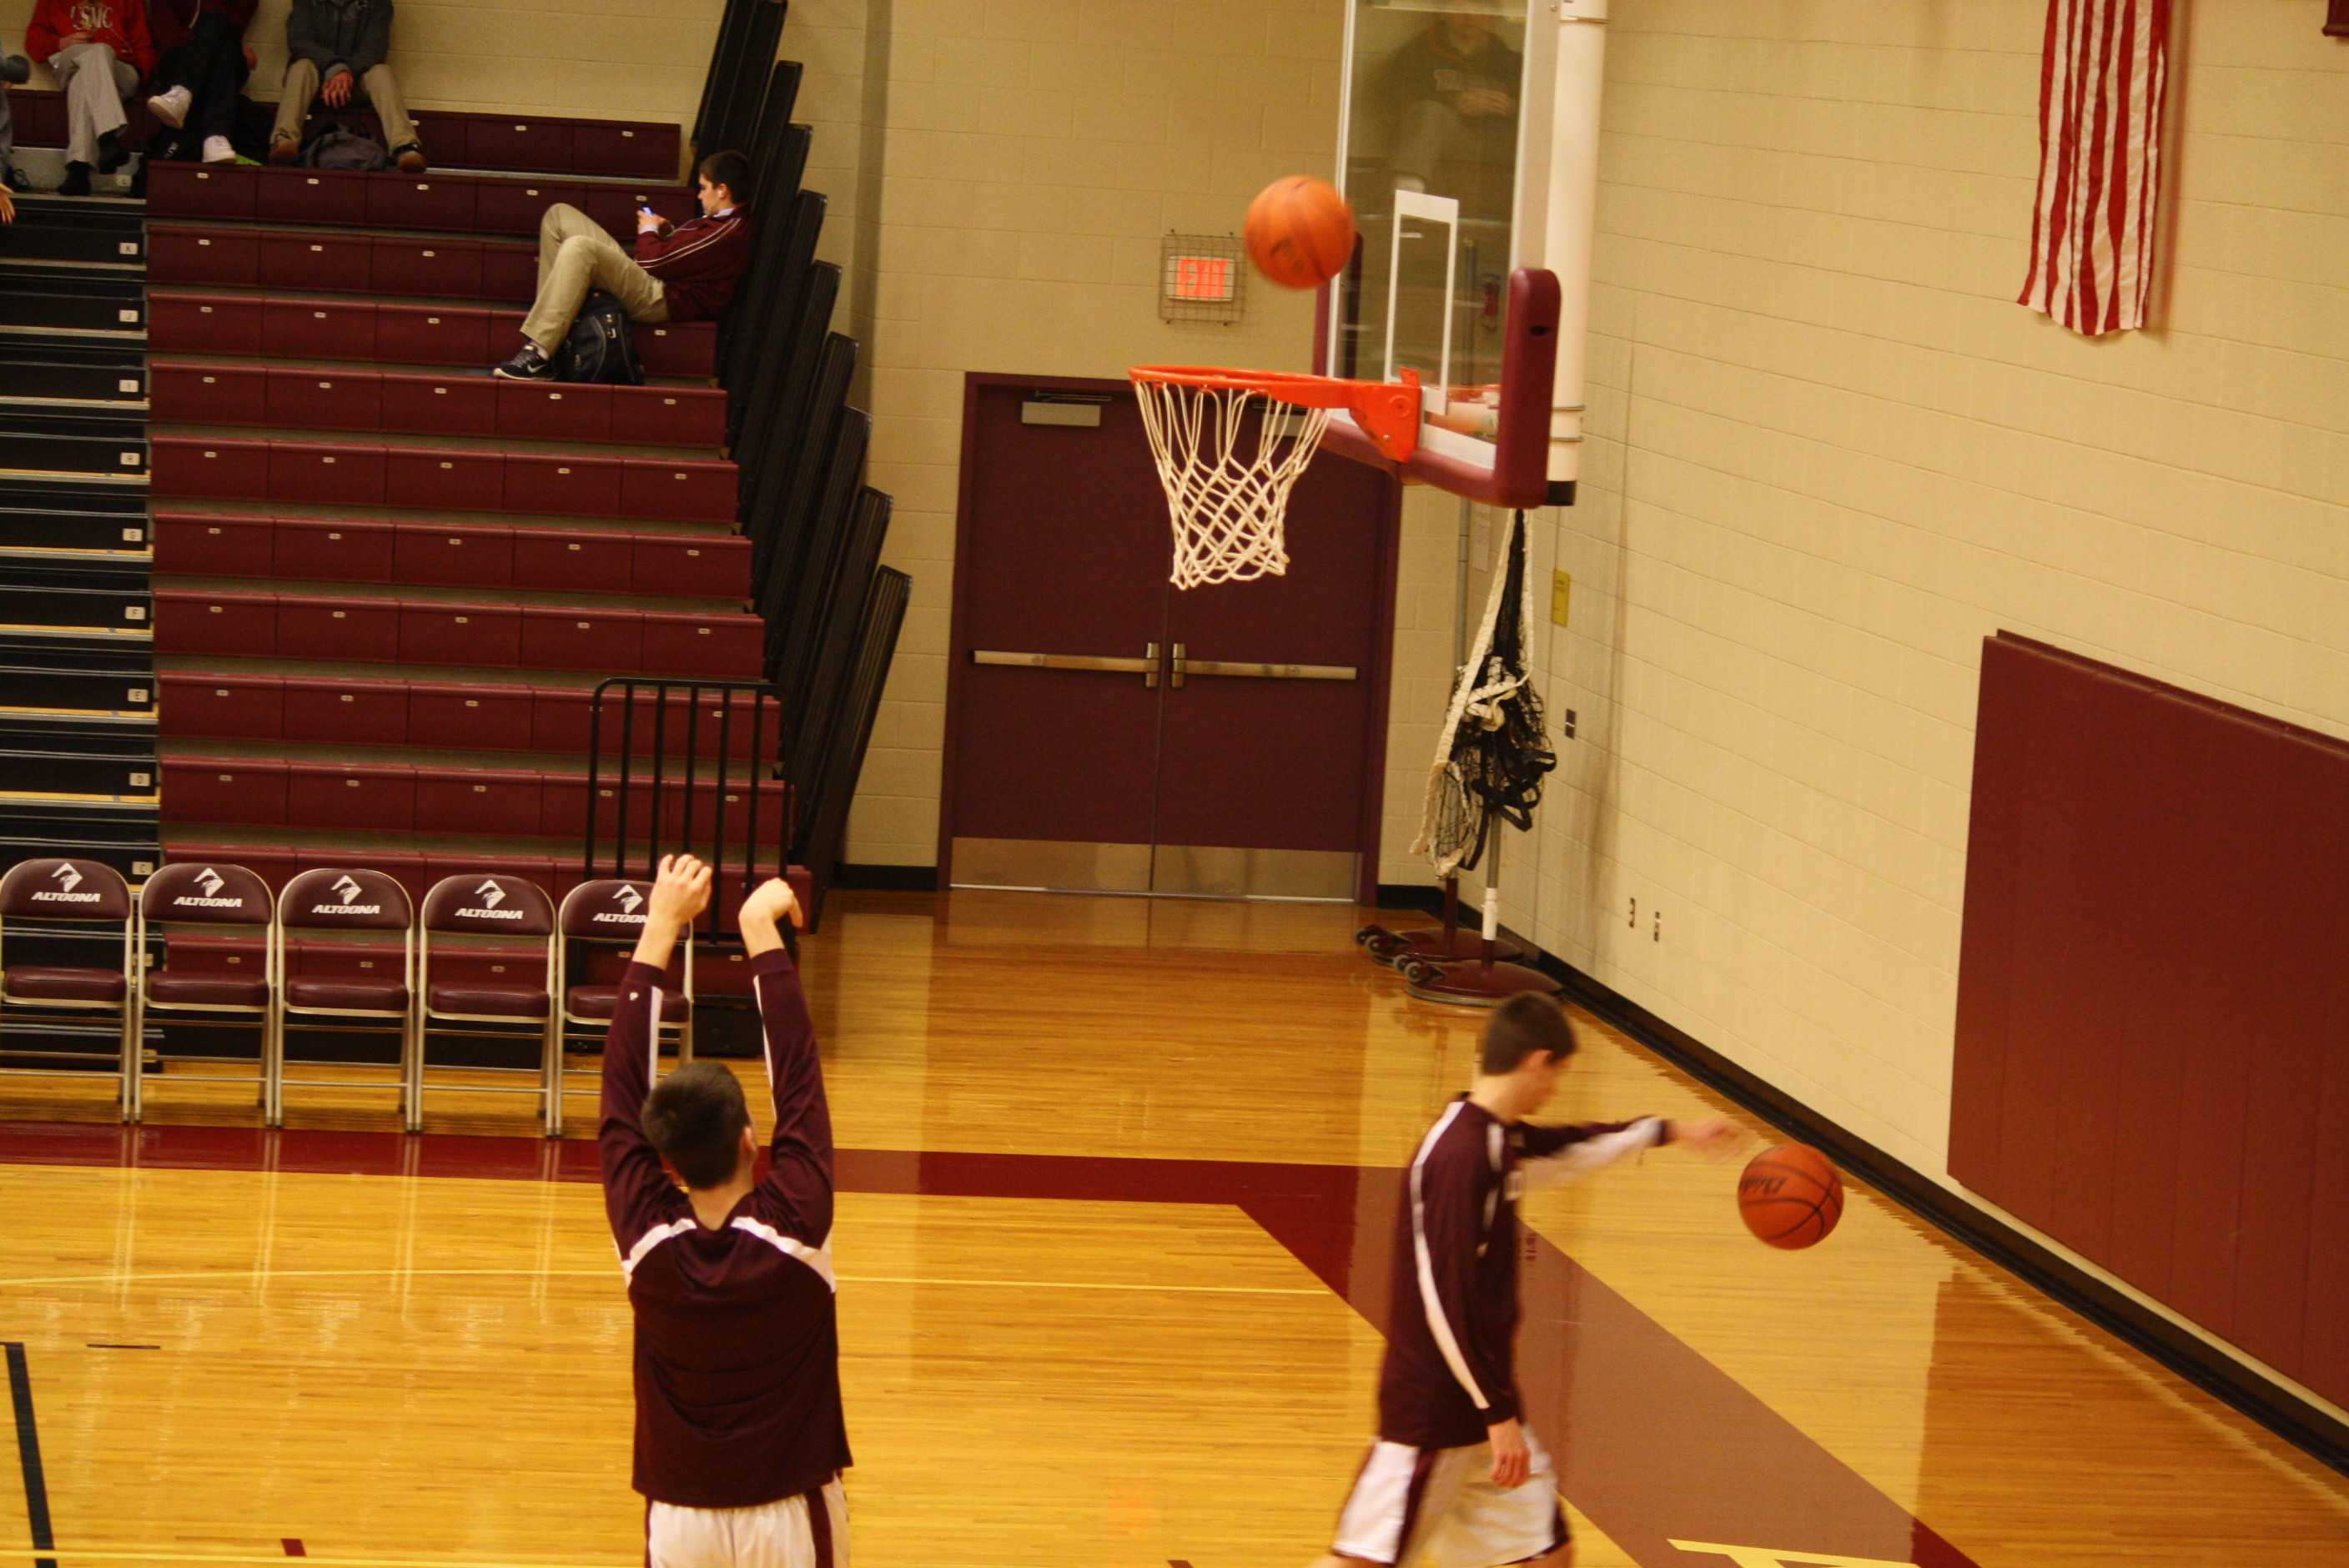 Ninth grader, Max Sankey warms up with some free throws before their basketball game  Photo taken by: Emily Simmons